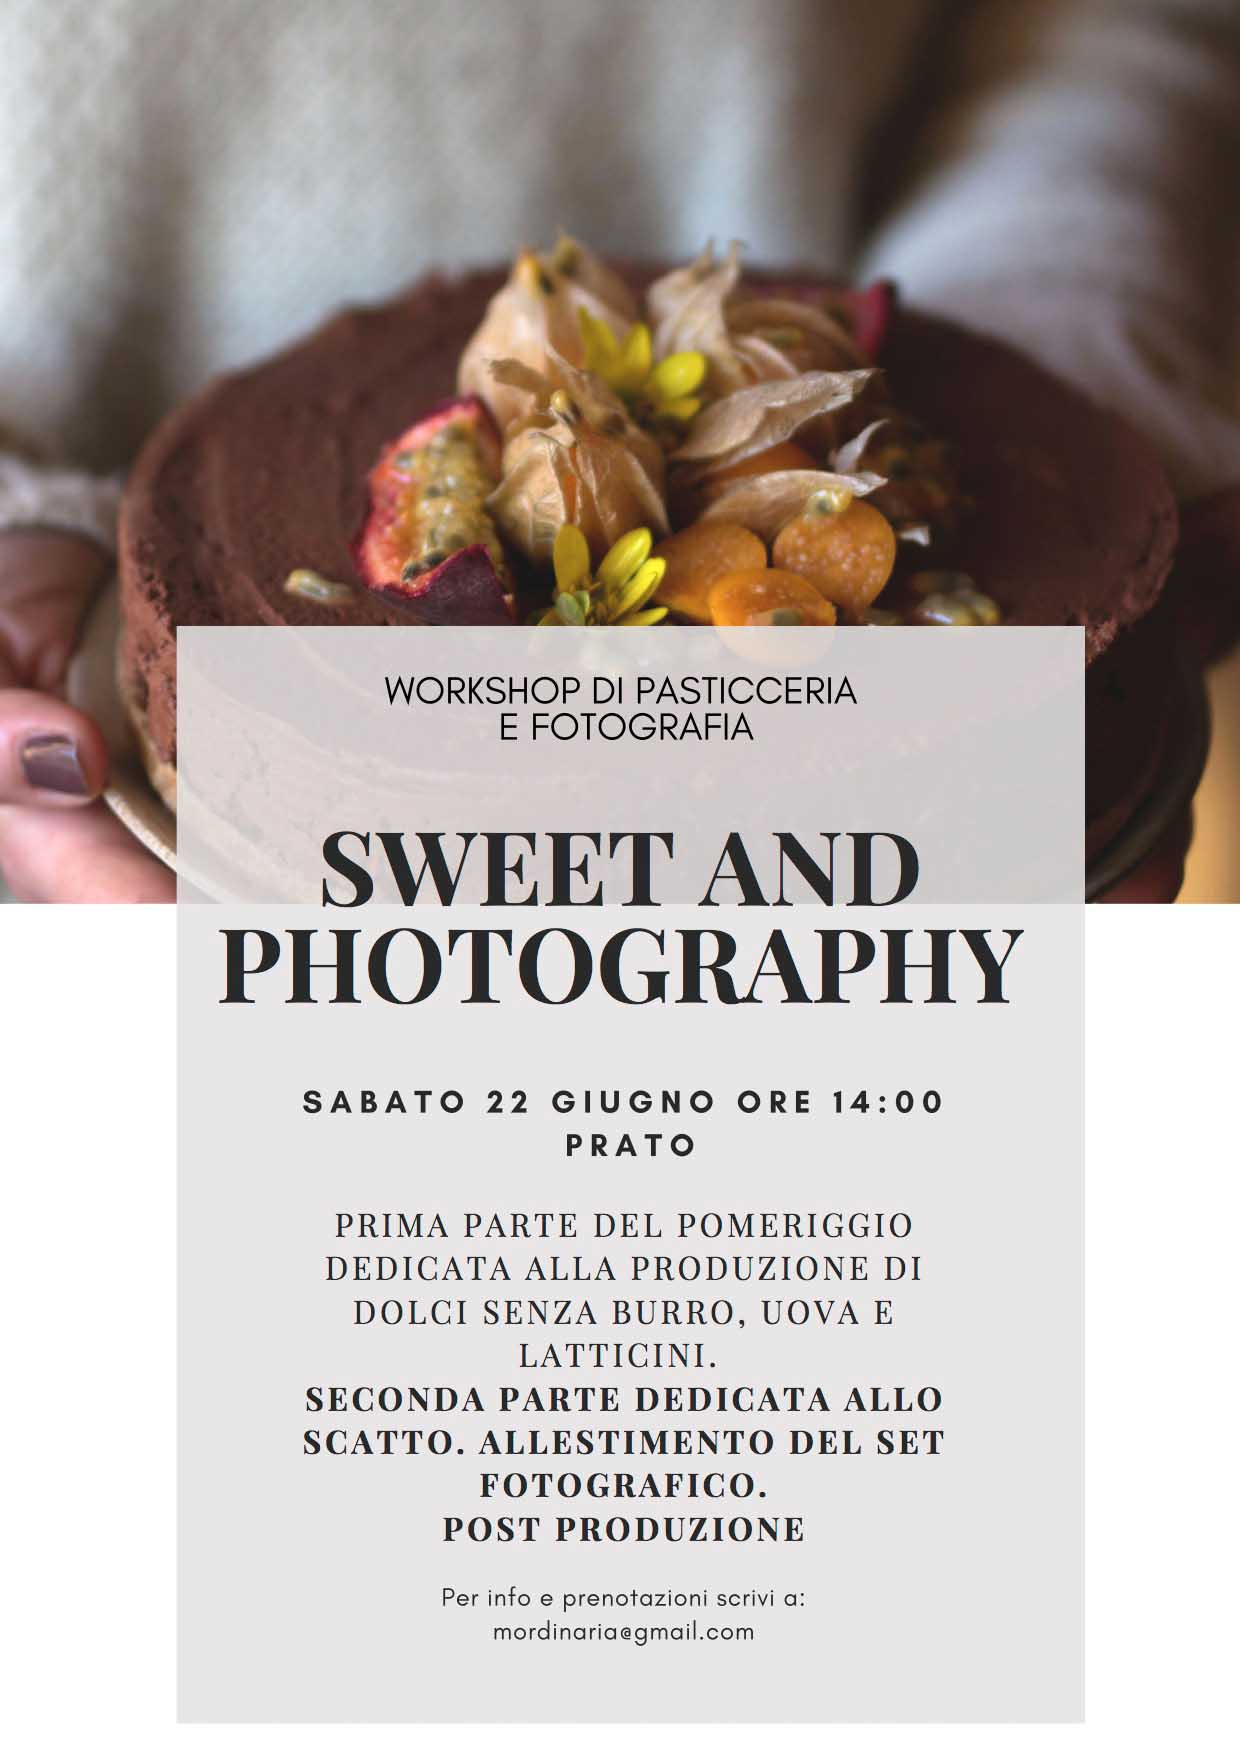 SWEET AND PHOTOGRAPHY